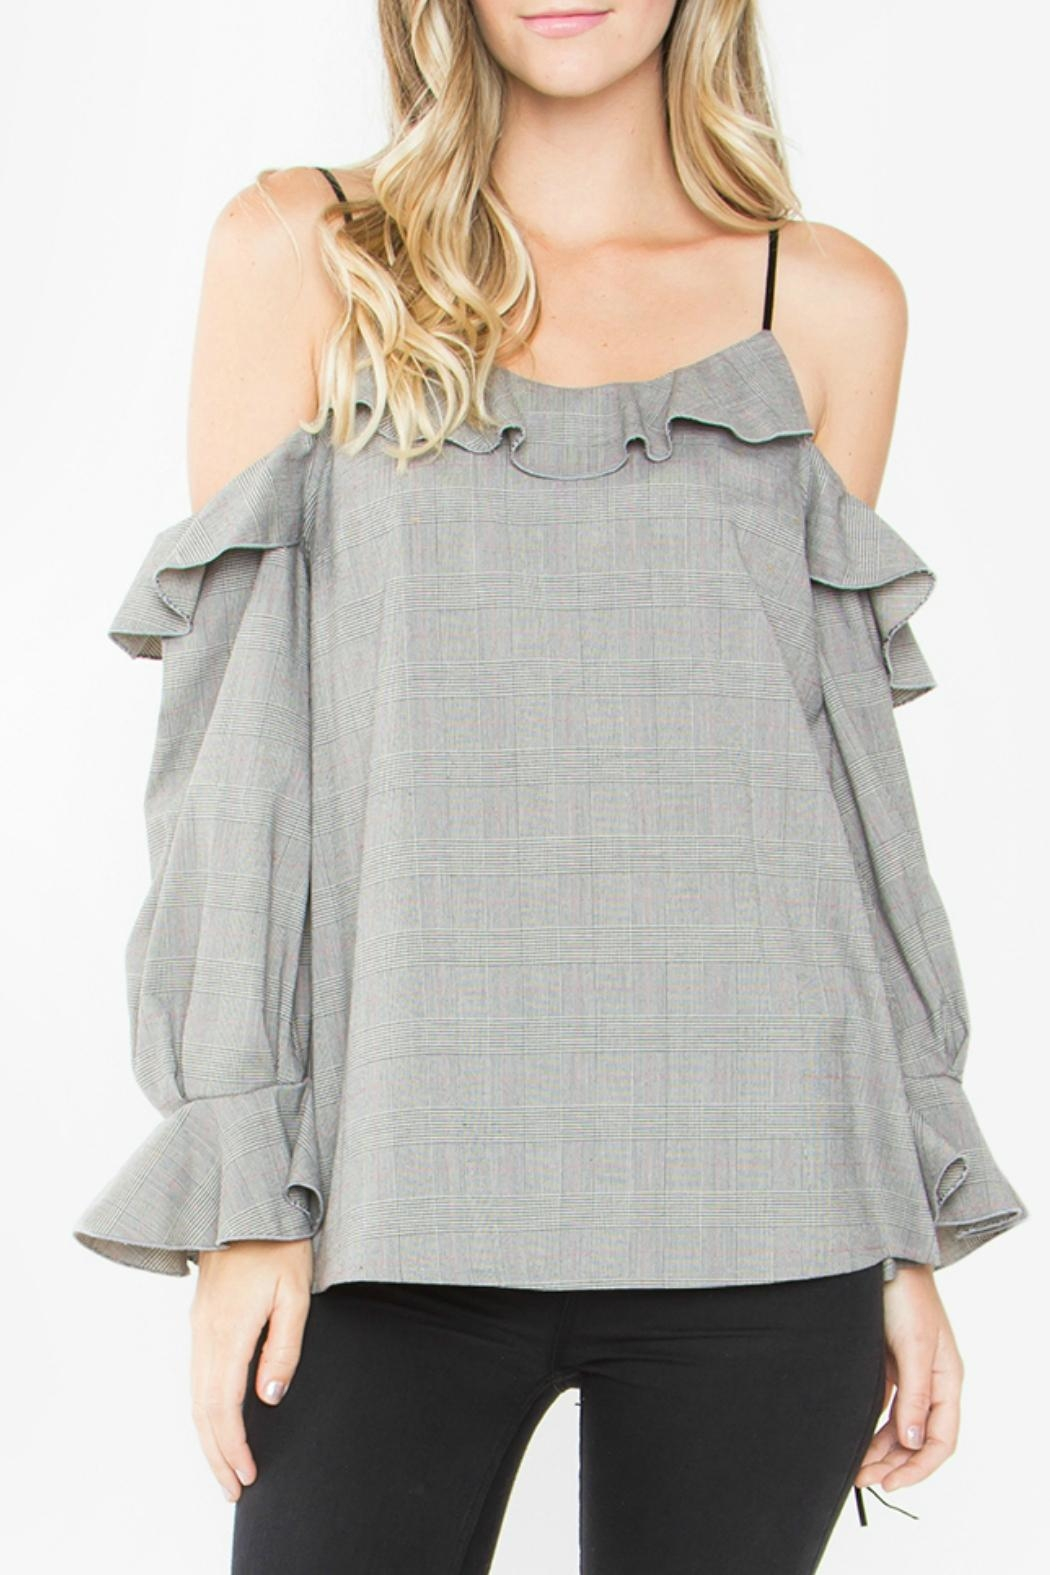 Sugar Lips Grey Cold Shoulder Top - Main Image